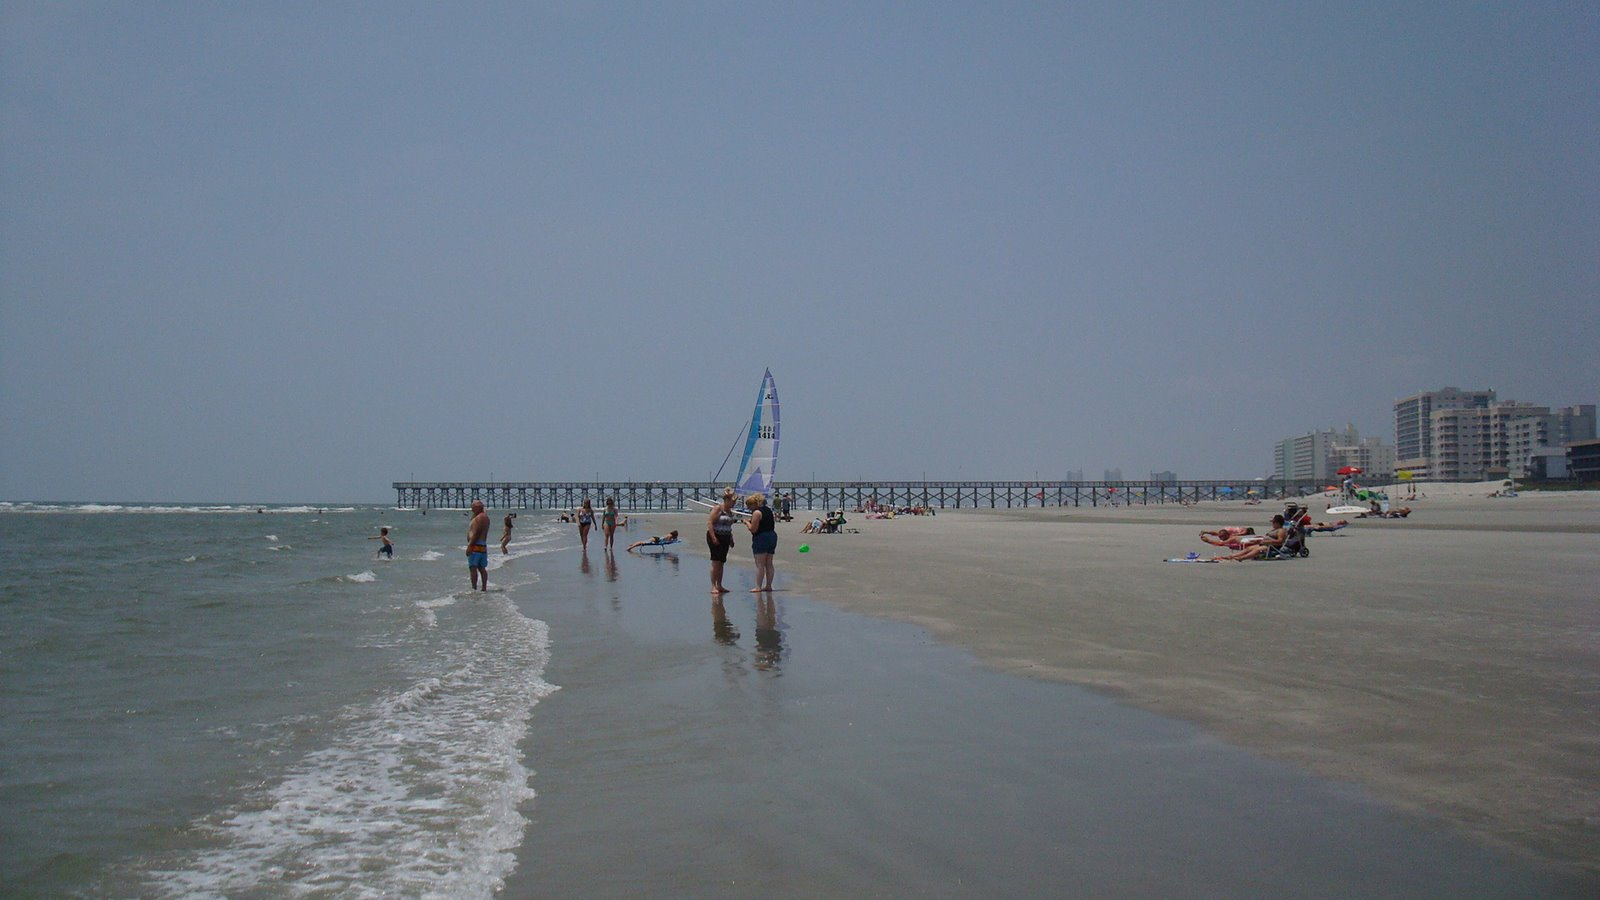 Download this North Myrtle Beach picture